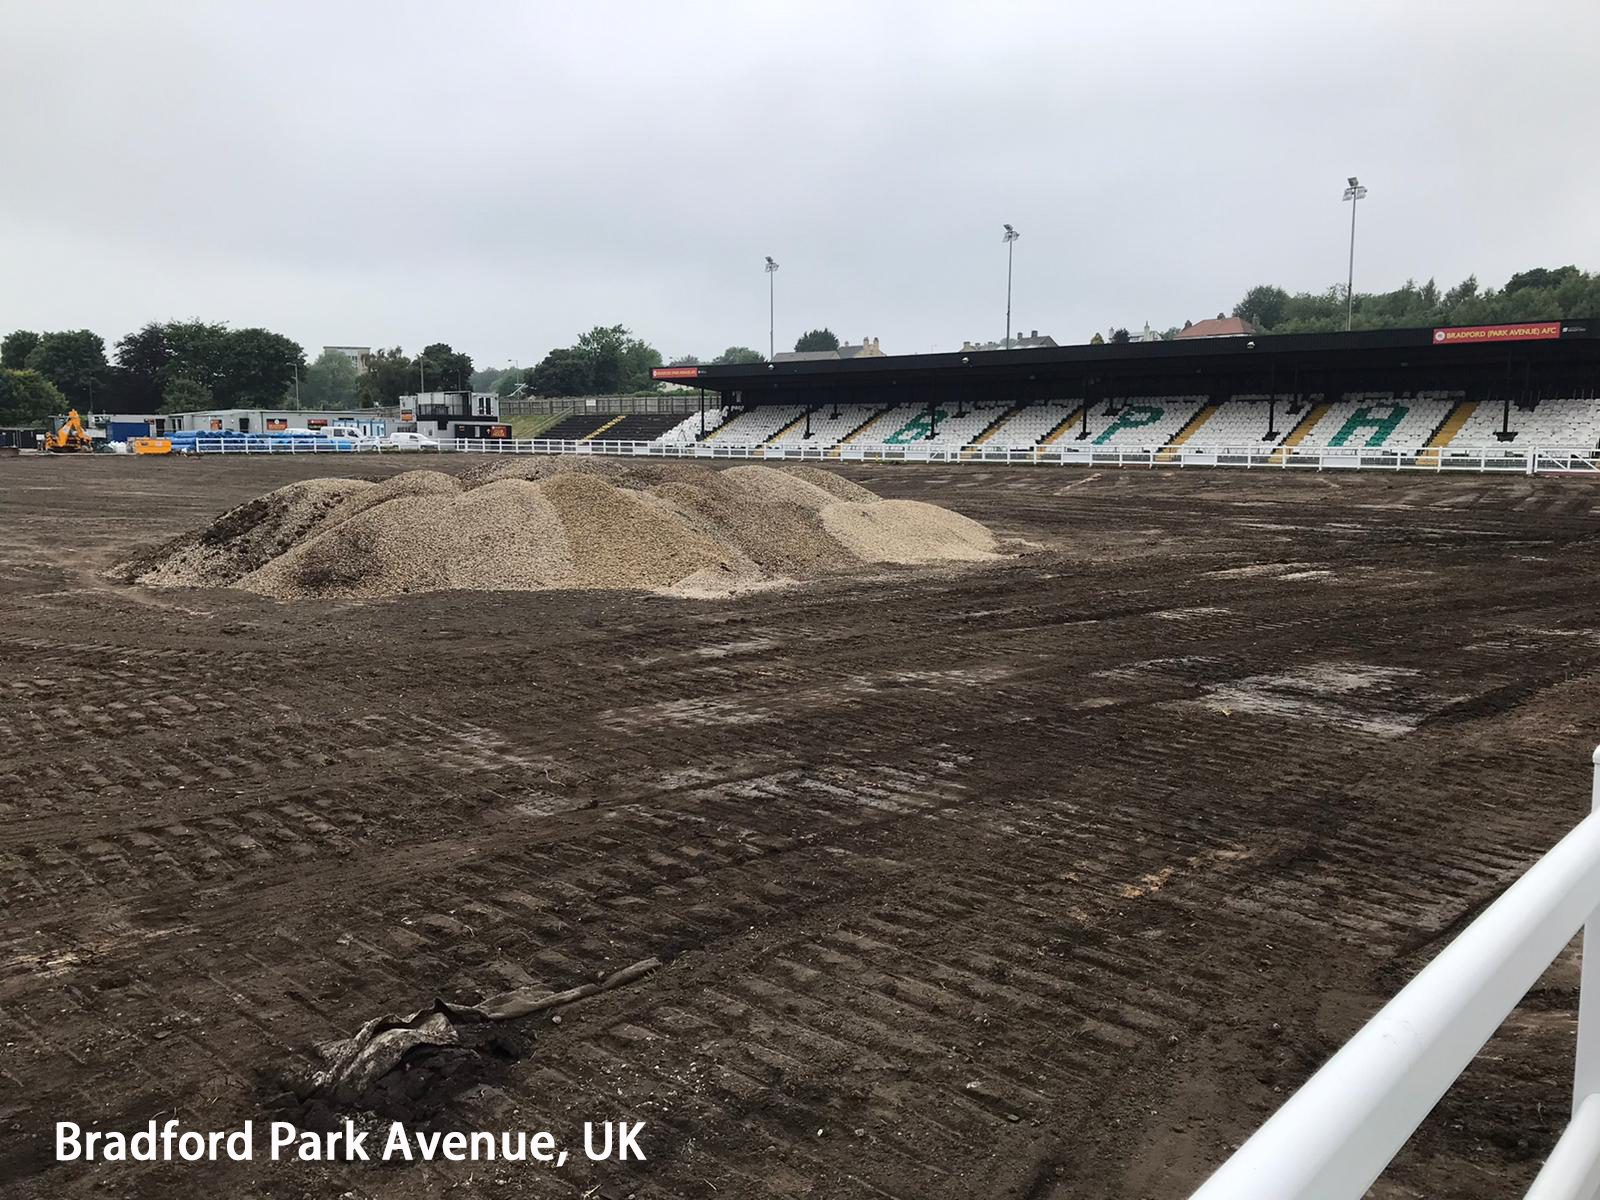 CCGrass has begun working at Bradford Park Avenue